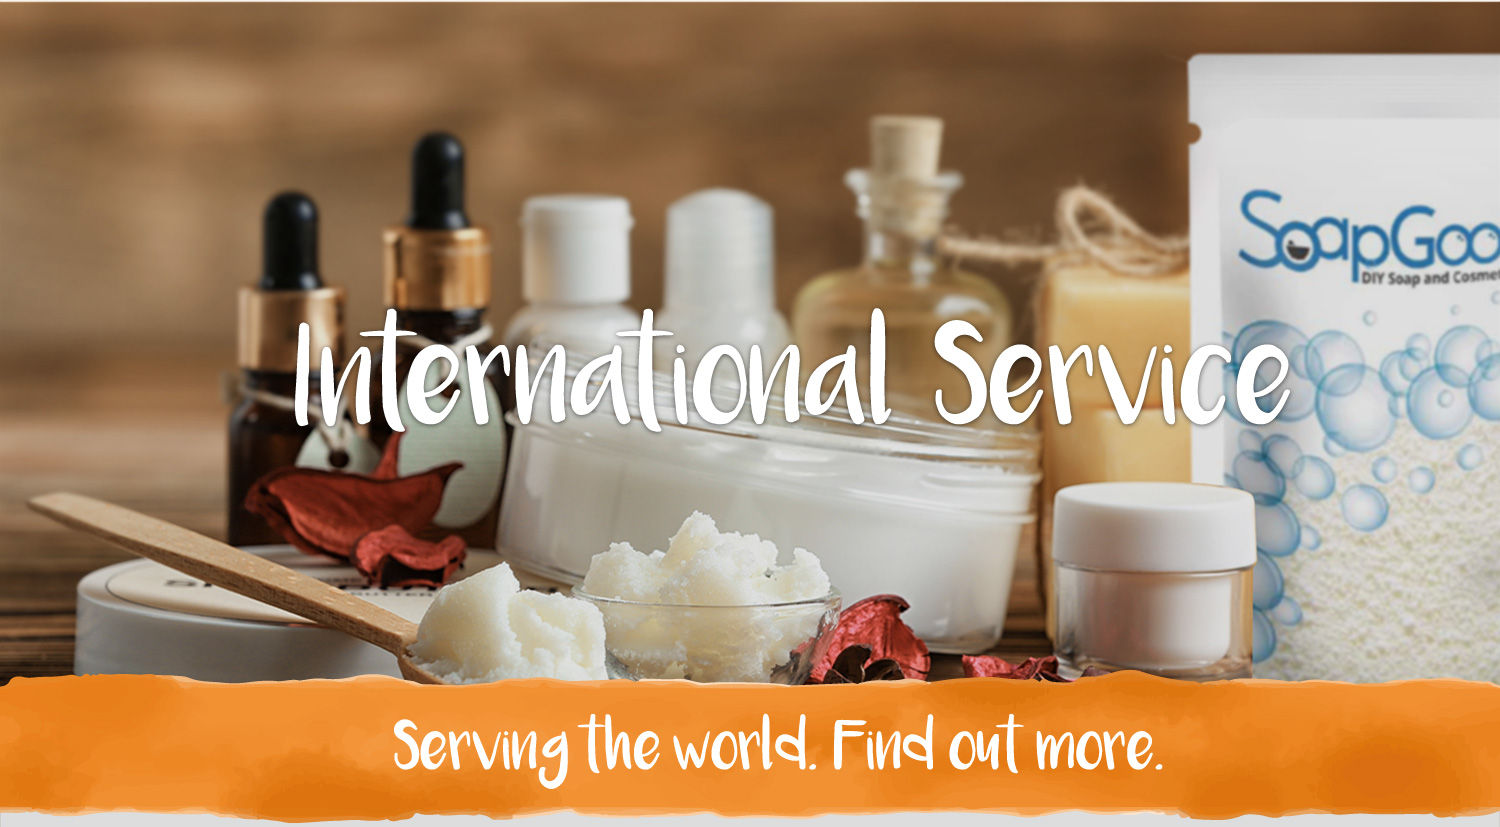 International Service. Serving the world. Find out more.